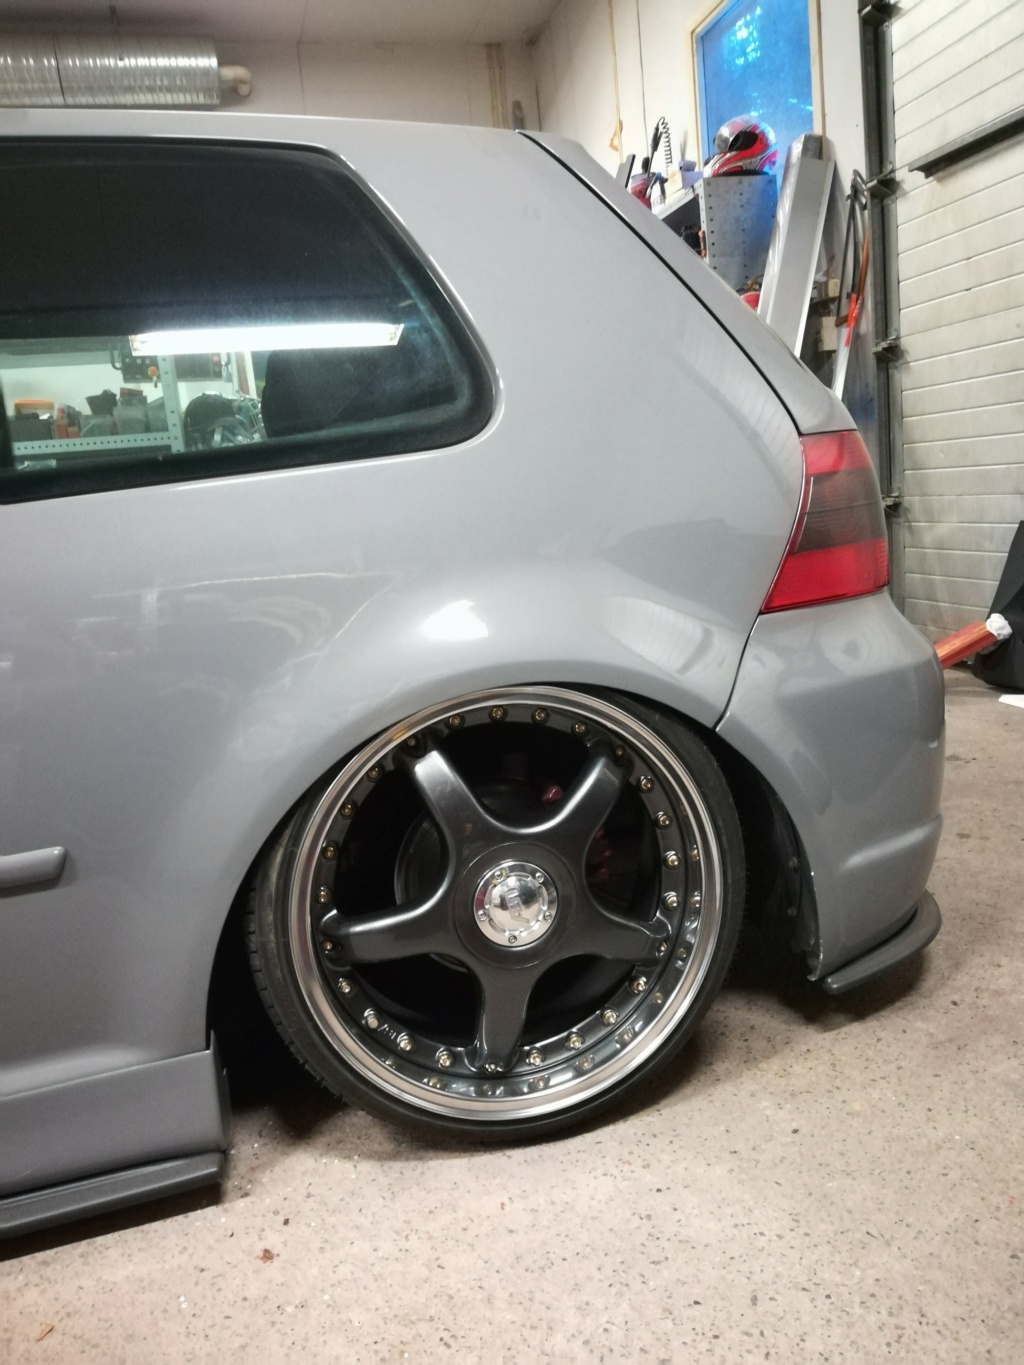 golffari: Bagged Golf mkiv gti -99, Nardo Grey - Sivu 3 Img_2074